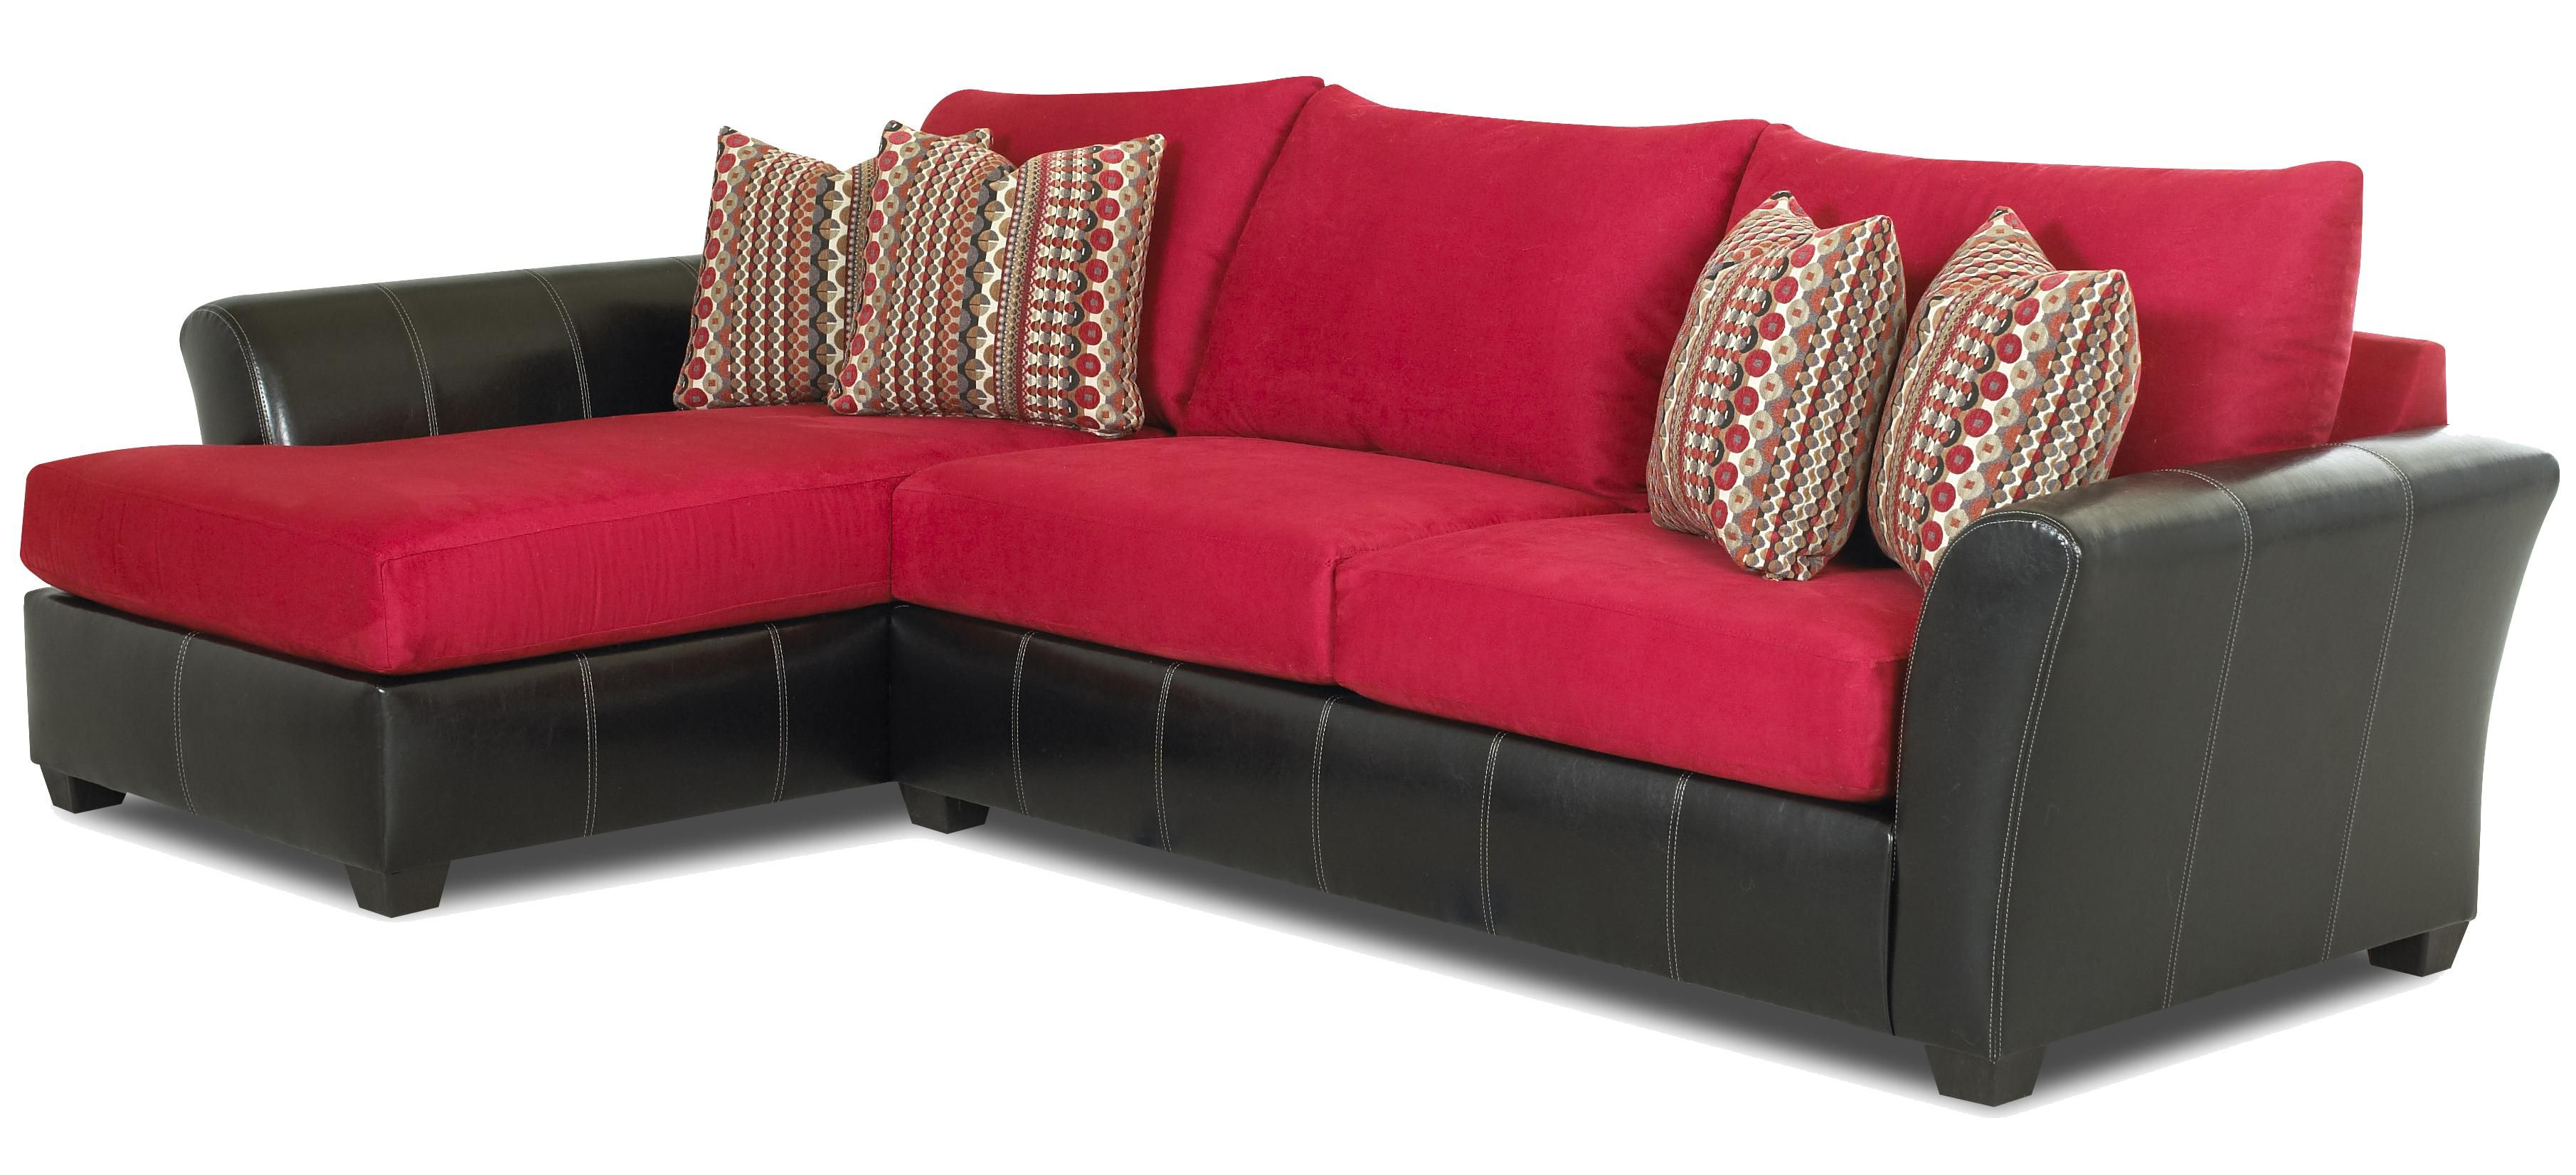 Cordova Sectional Sofa By Klaussner